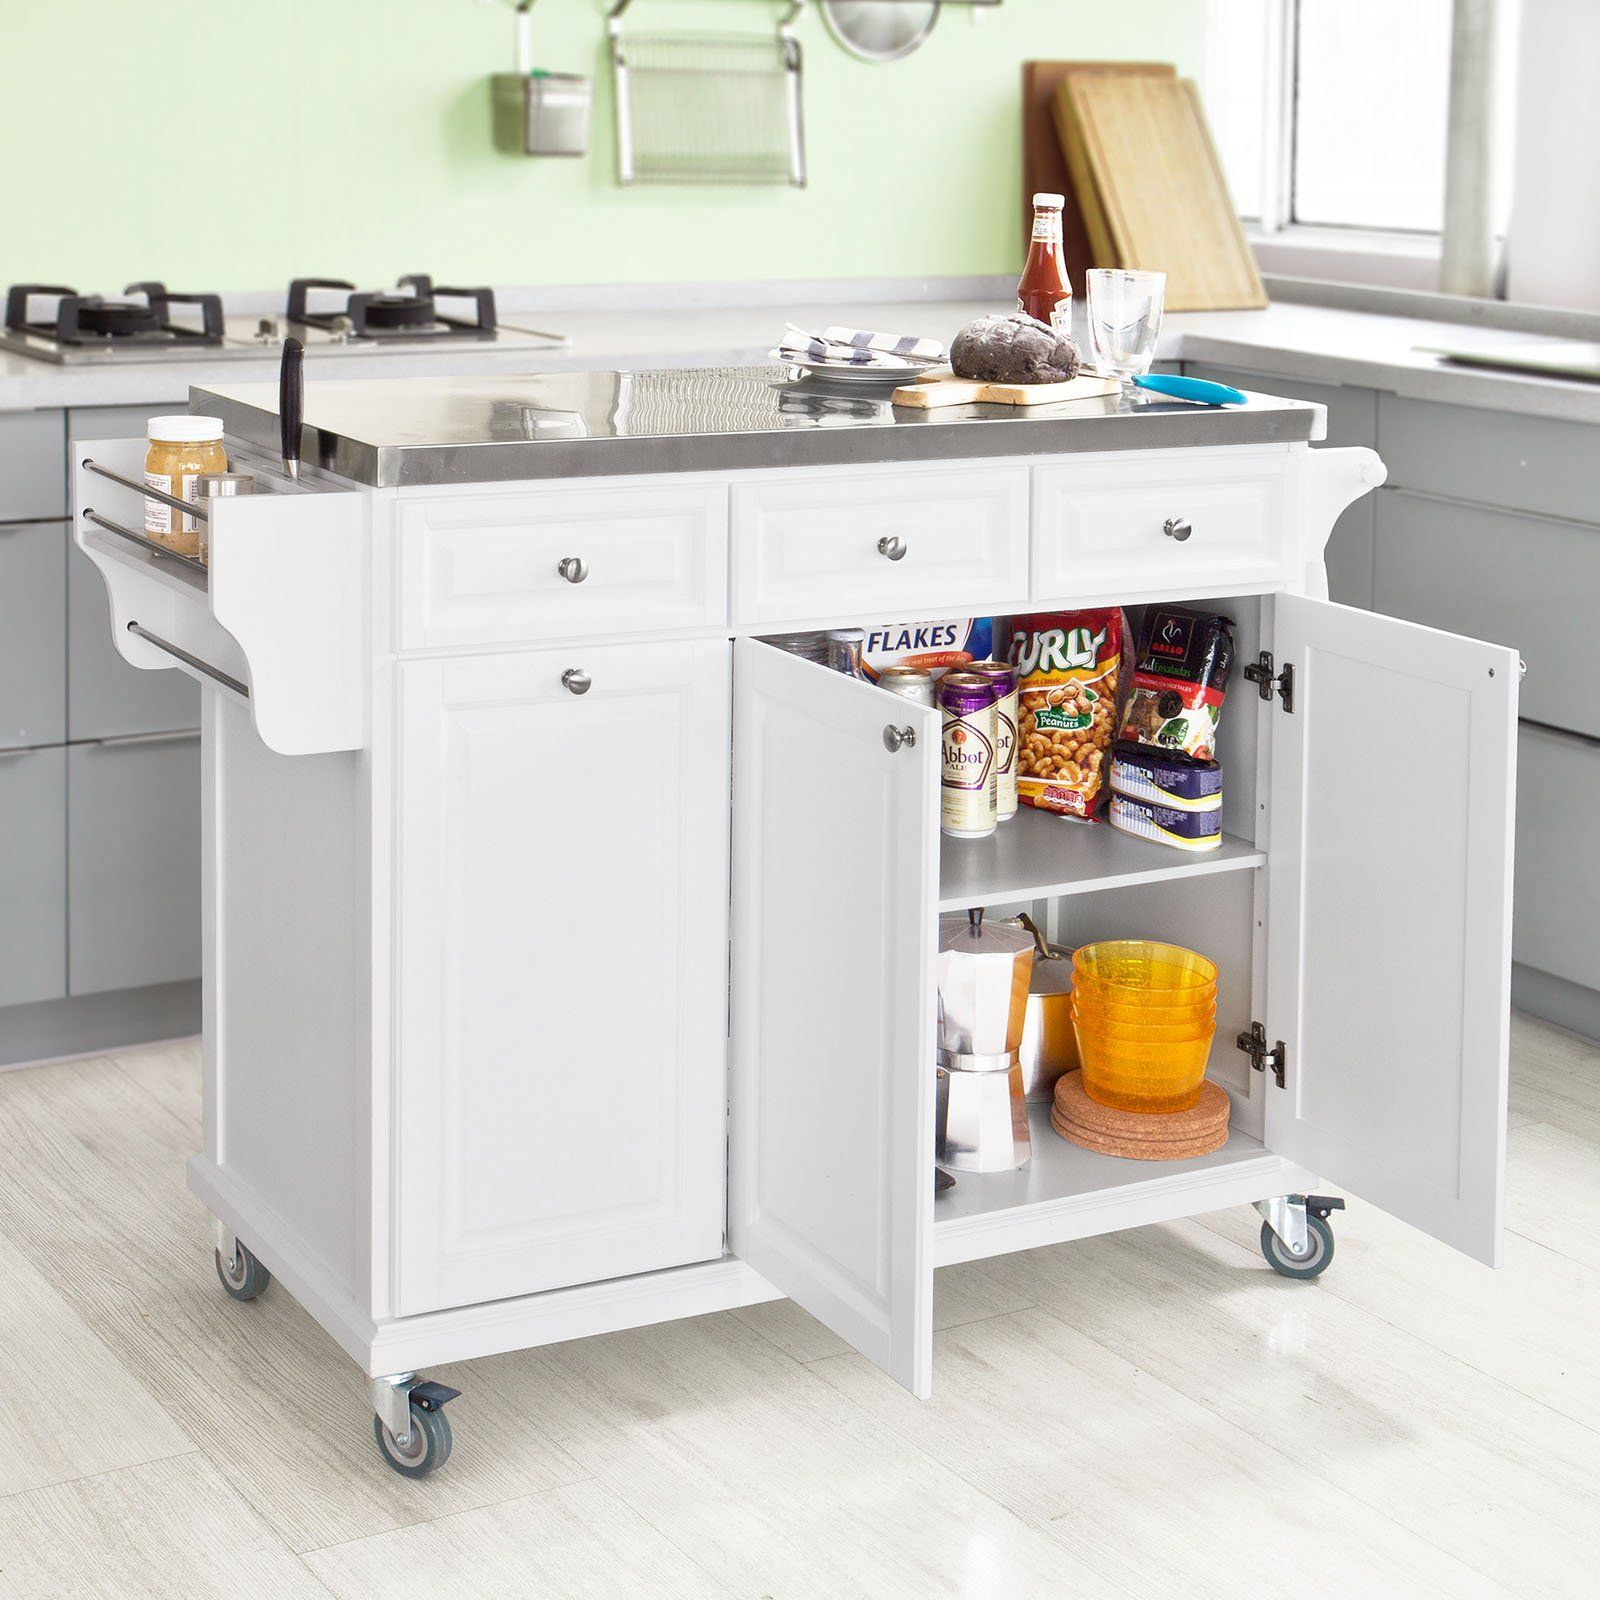 Kitchen Island Trolley sobuy white luxury kitchen island storage trolley cart, kitchen